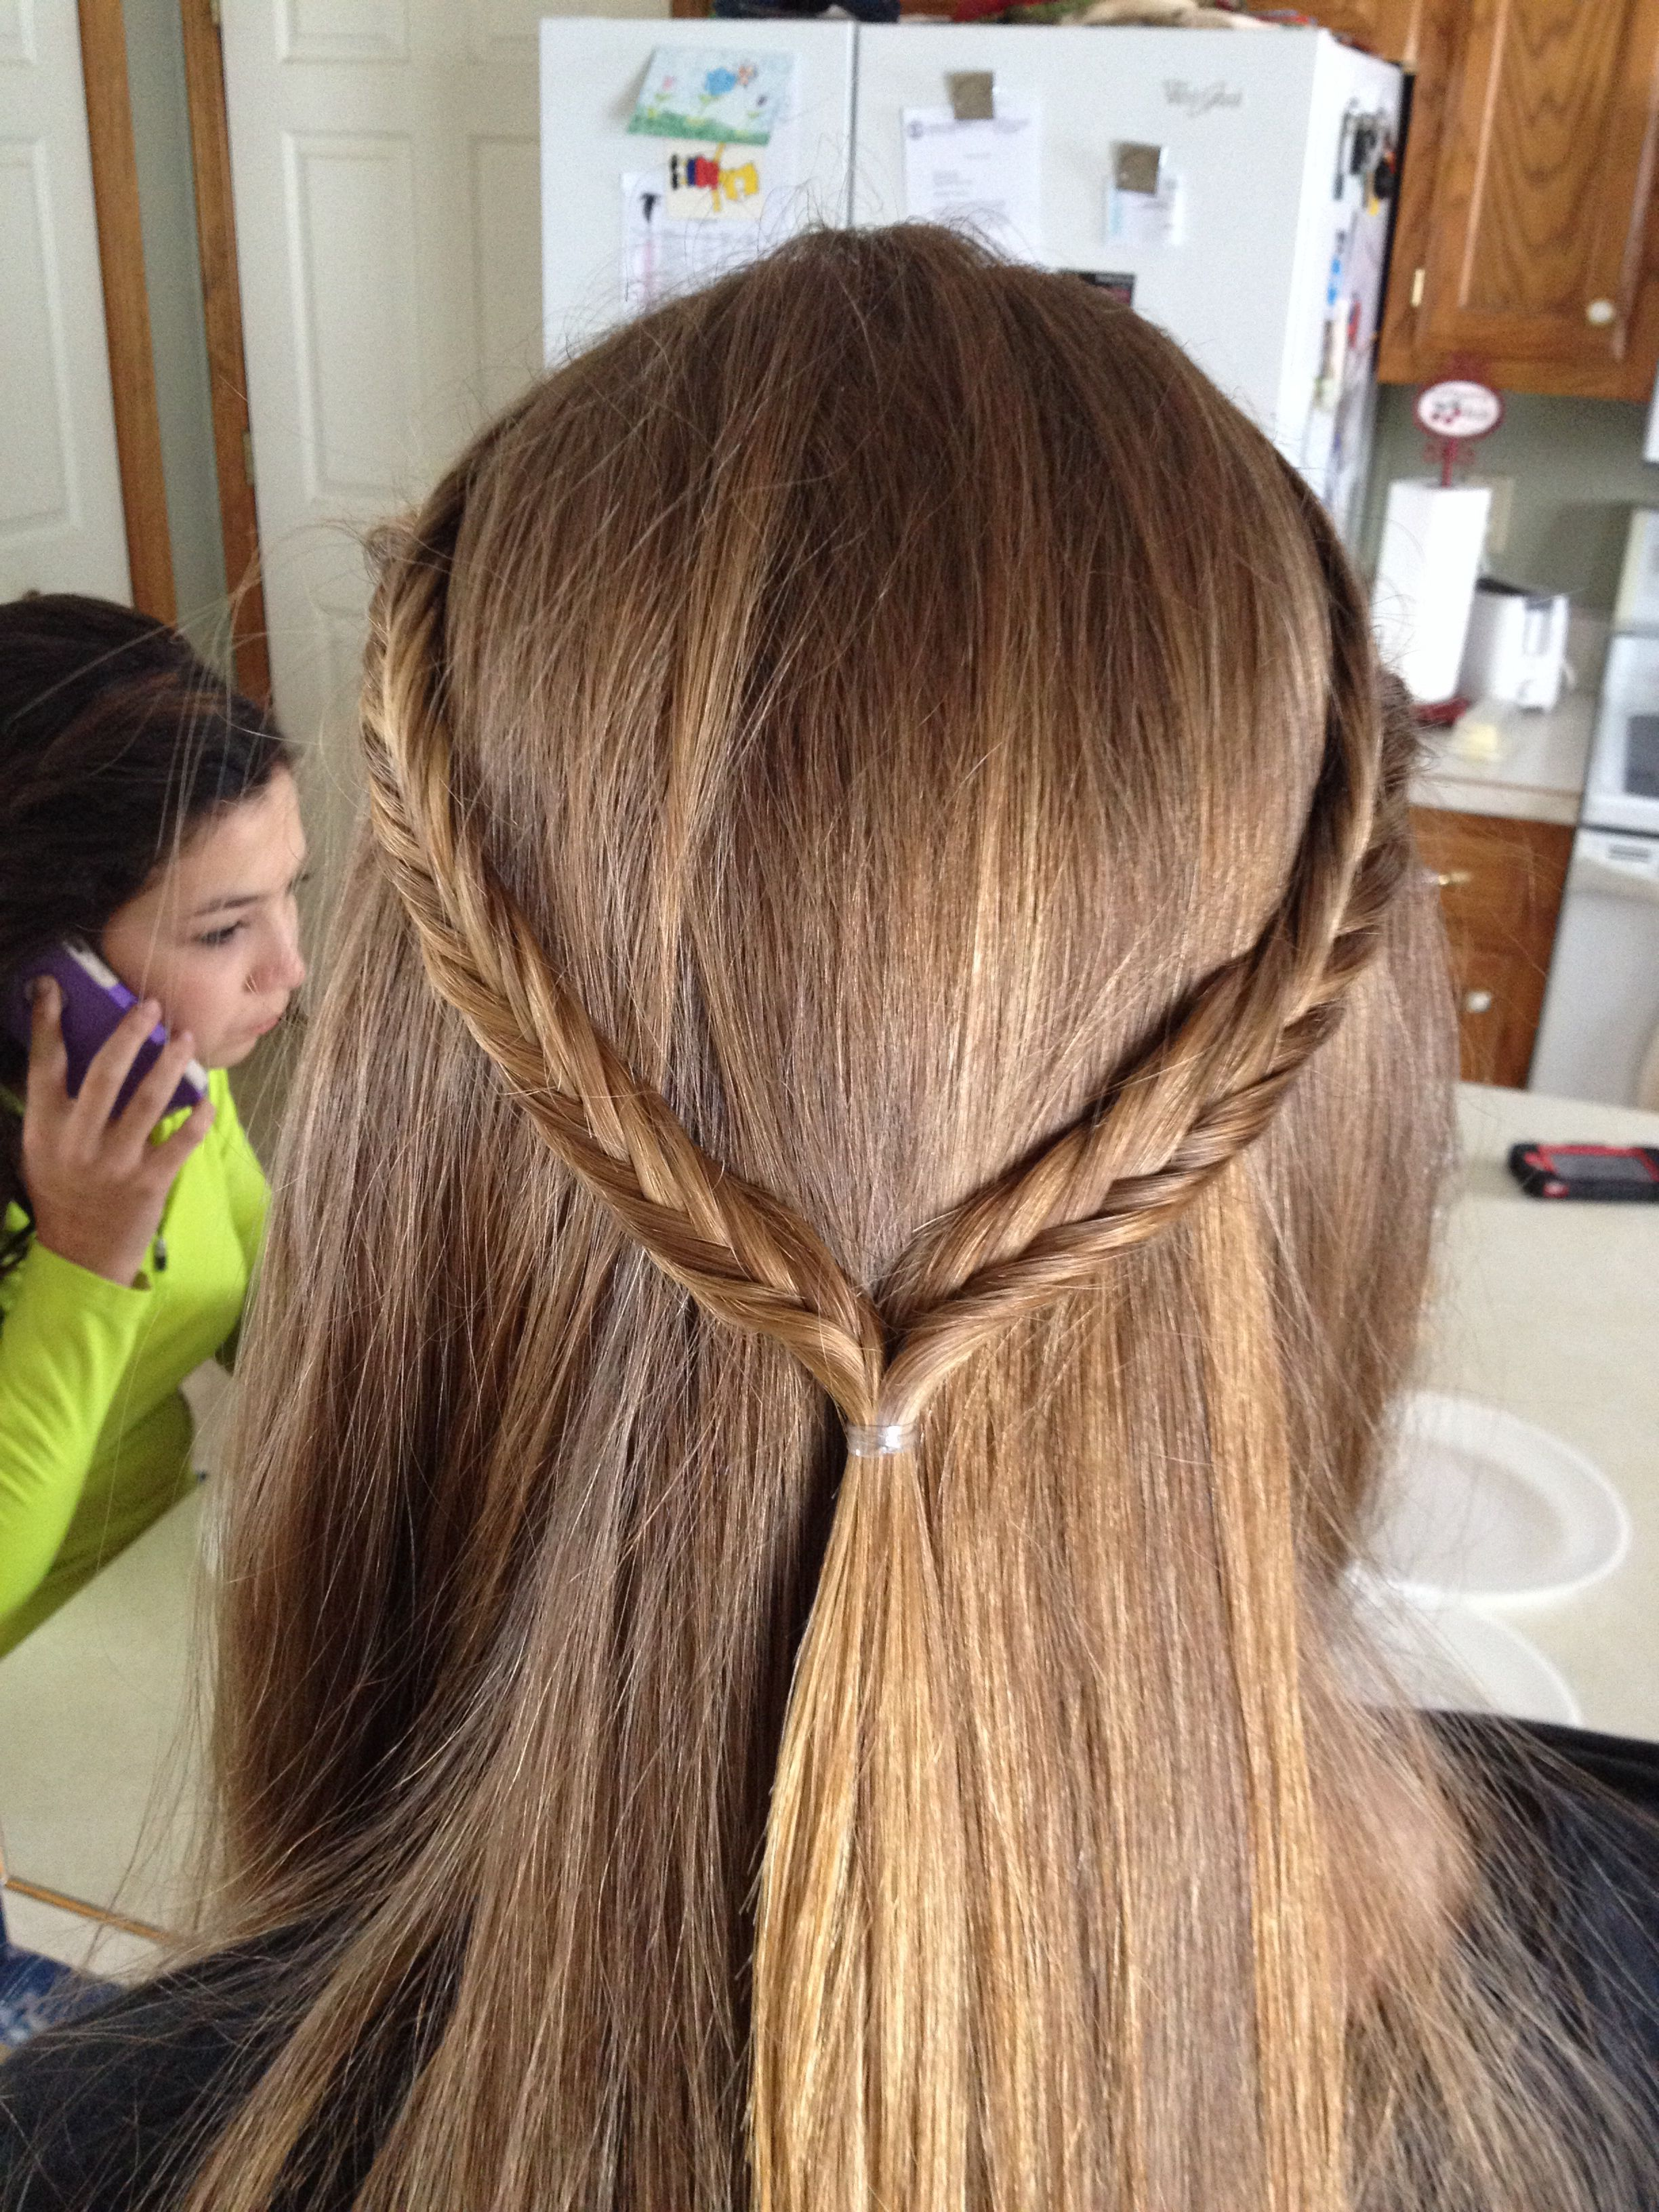 Straight Hair With Fishtail Crown Everyday School Quick Hairstyle Long Hairstyles Homecoming Hairstyle Straight Hairstyles Long Hair Styles Easy Hairstyles